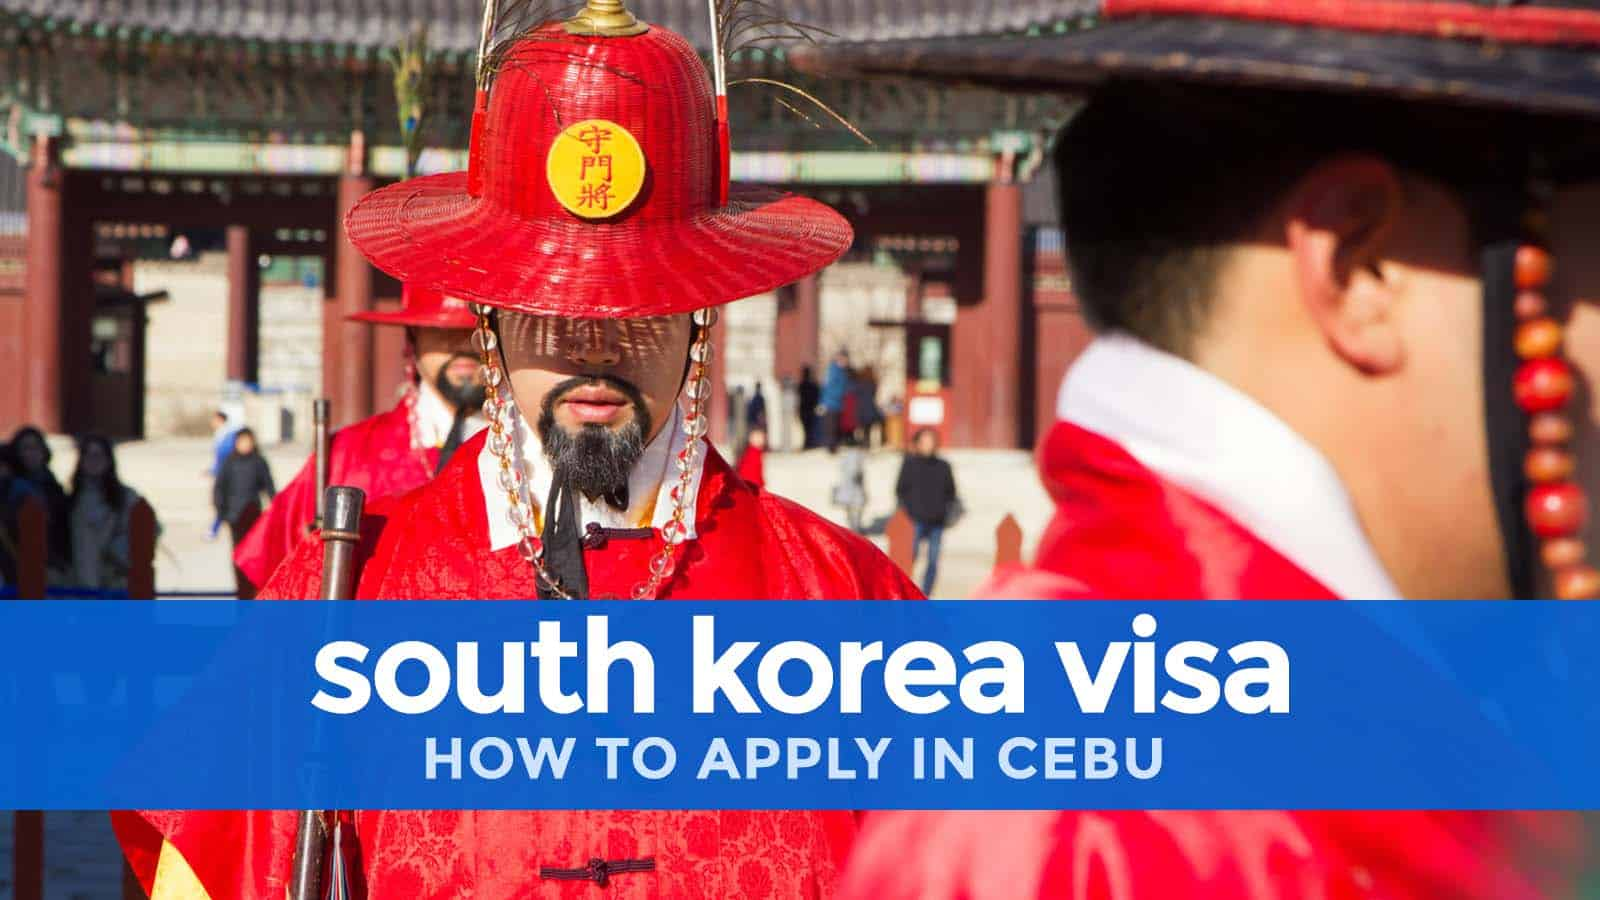 HOW TO APPLY for a SOUTH KOREA VISA in CEBU